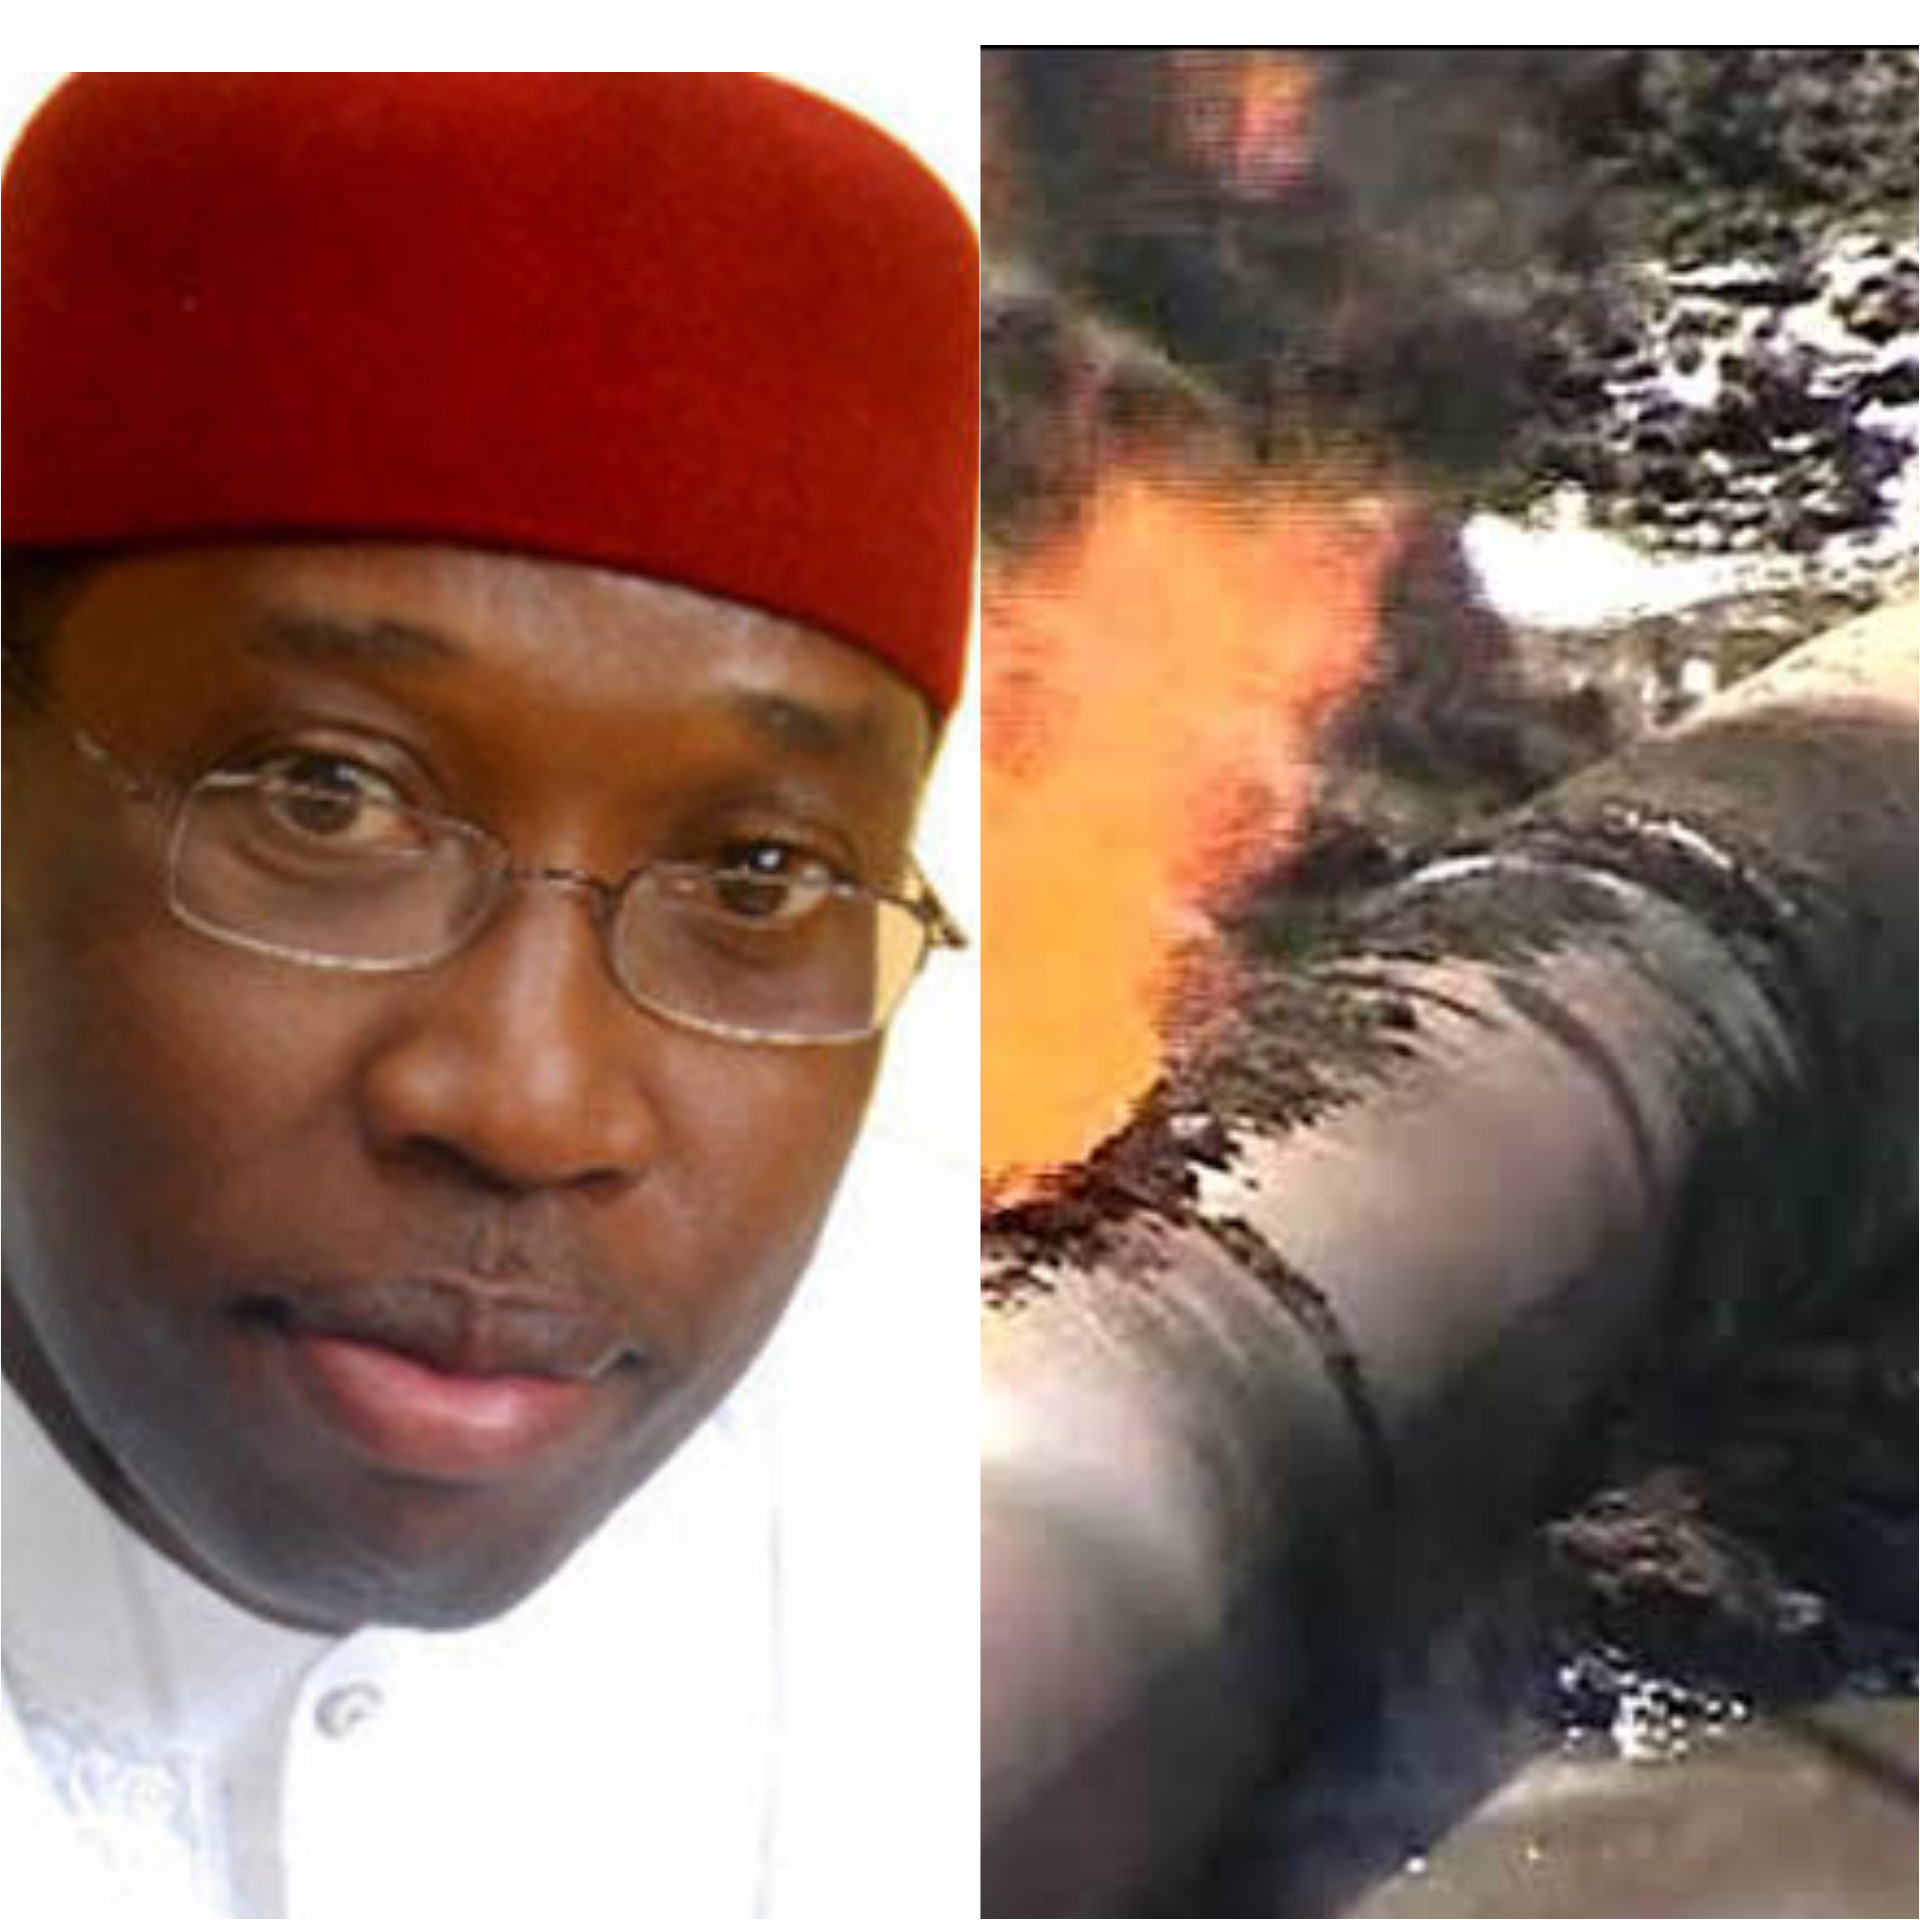 Delta state government pleads with? Ijaw, Itsekiri communities over threats to shut down oil facilities due to unmet demands